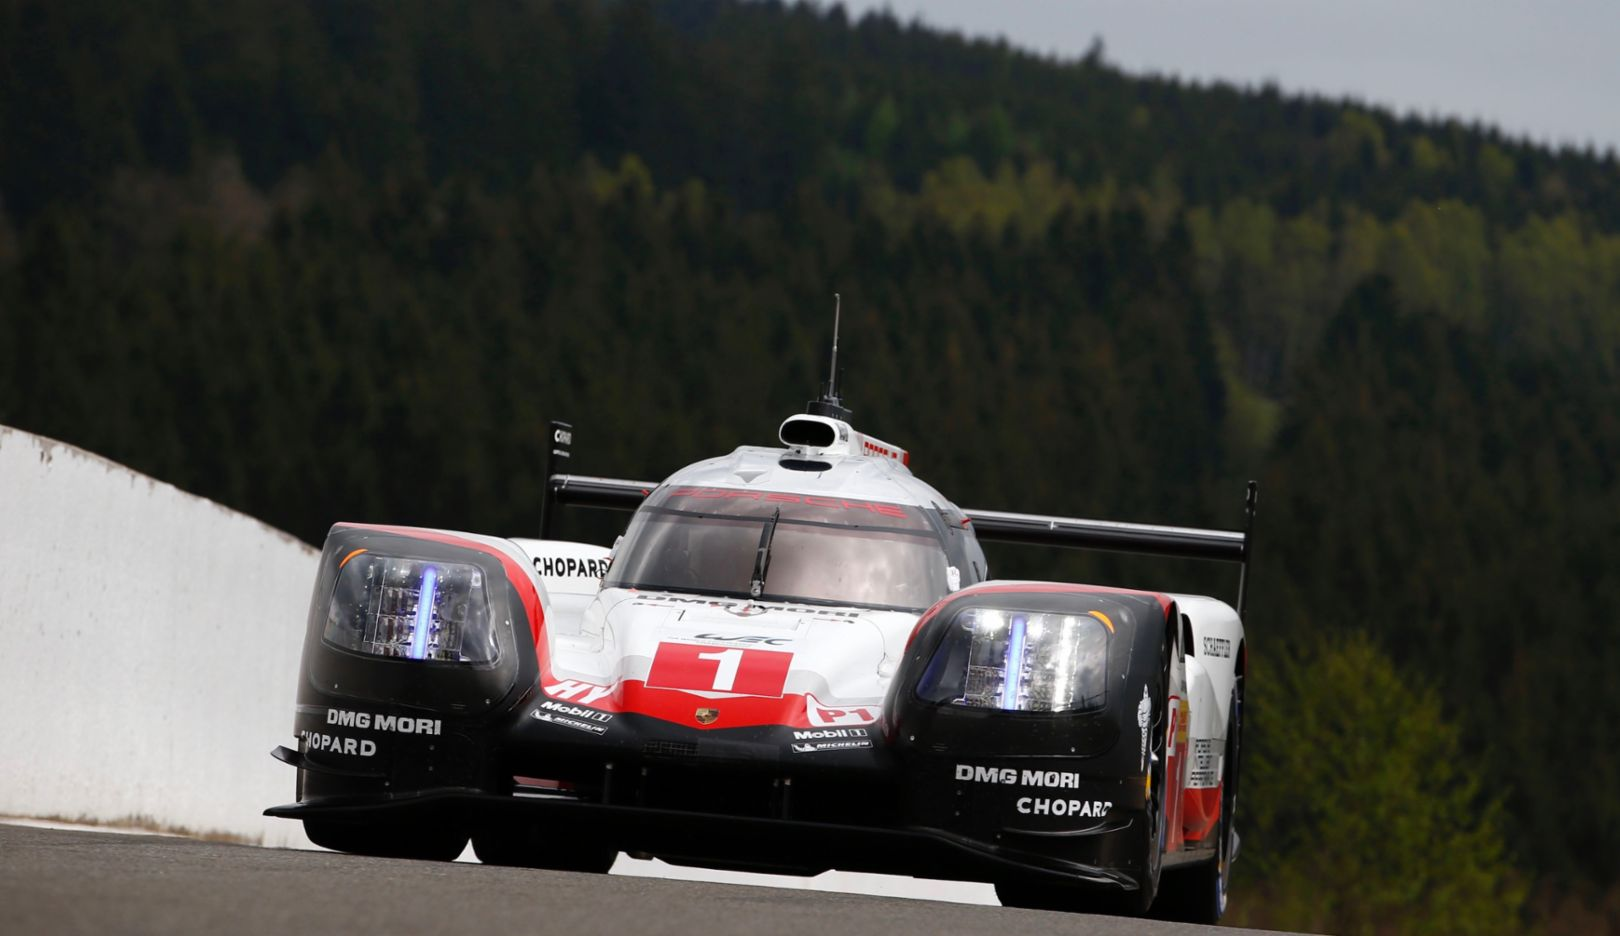 919 Hybrid, WEC, Qualifying, Spa-Francorchamps, Belgium, 2017, Porsche AG